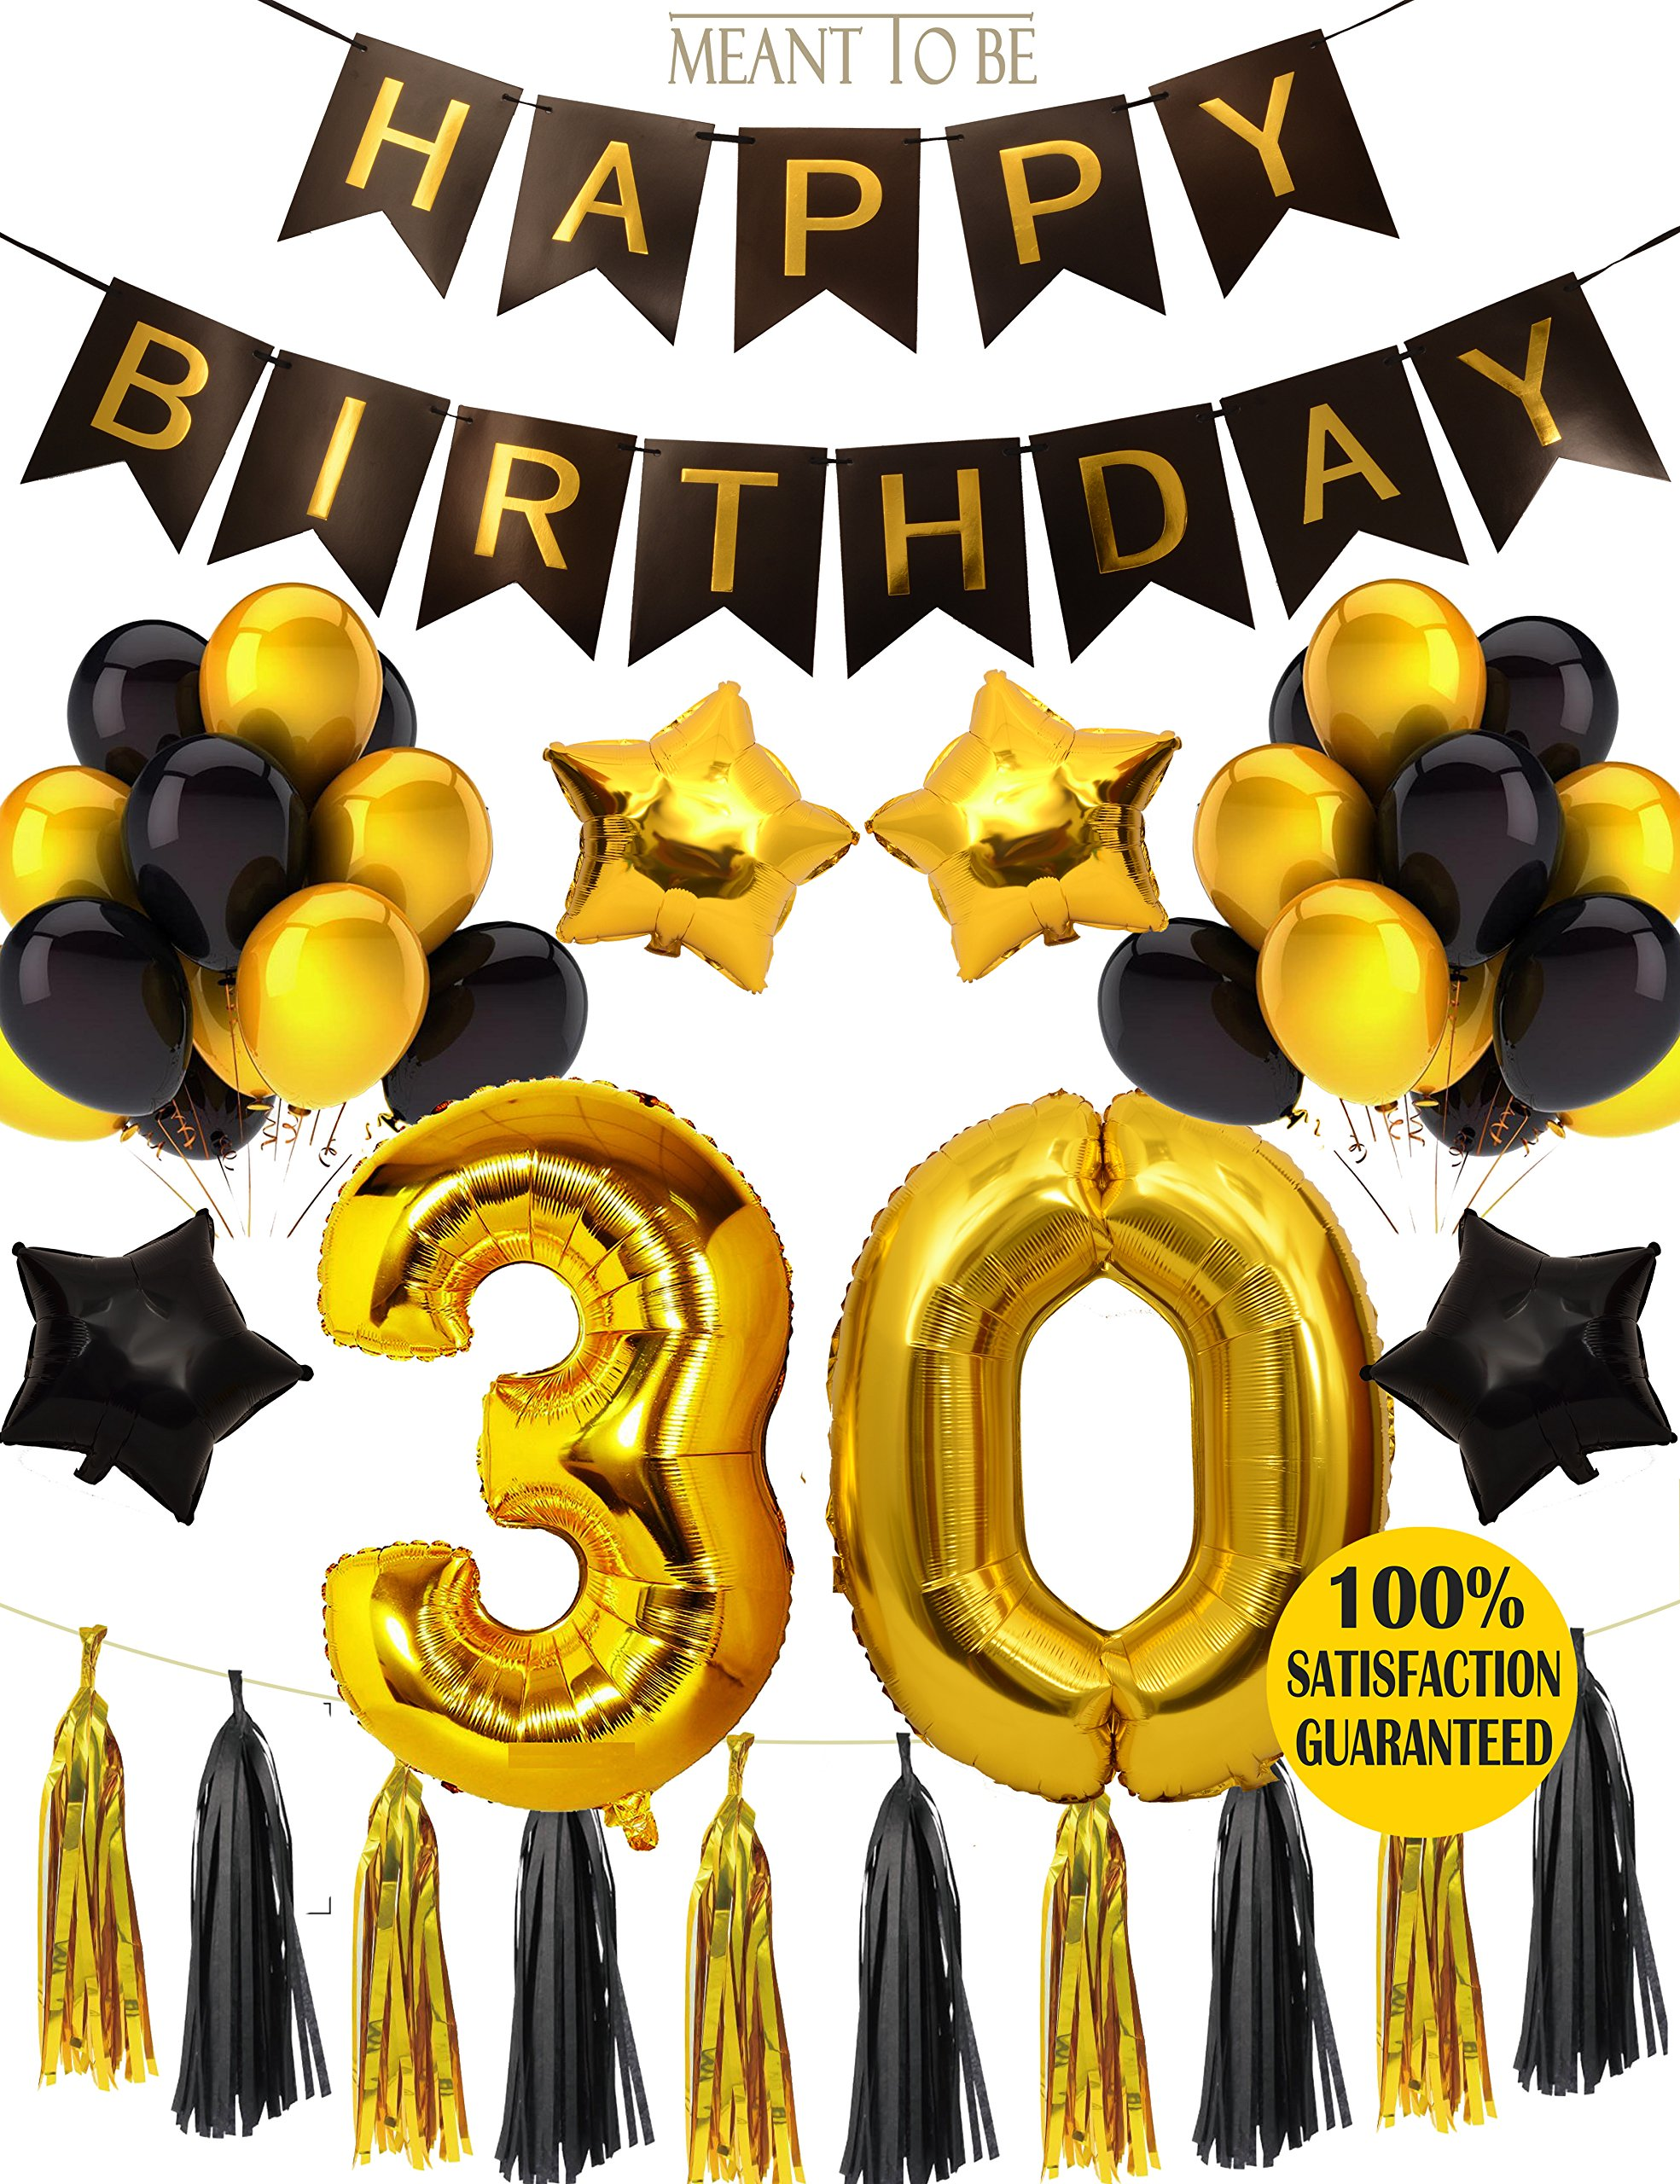 30th BIRTHDAY PARTY DECORATIONS KIT